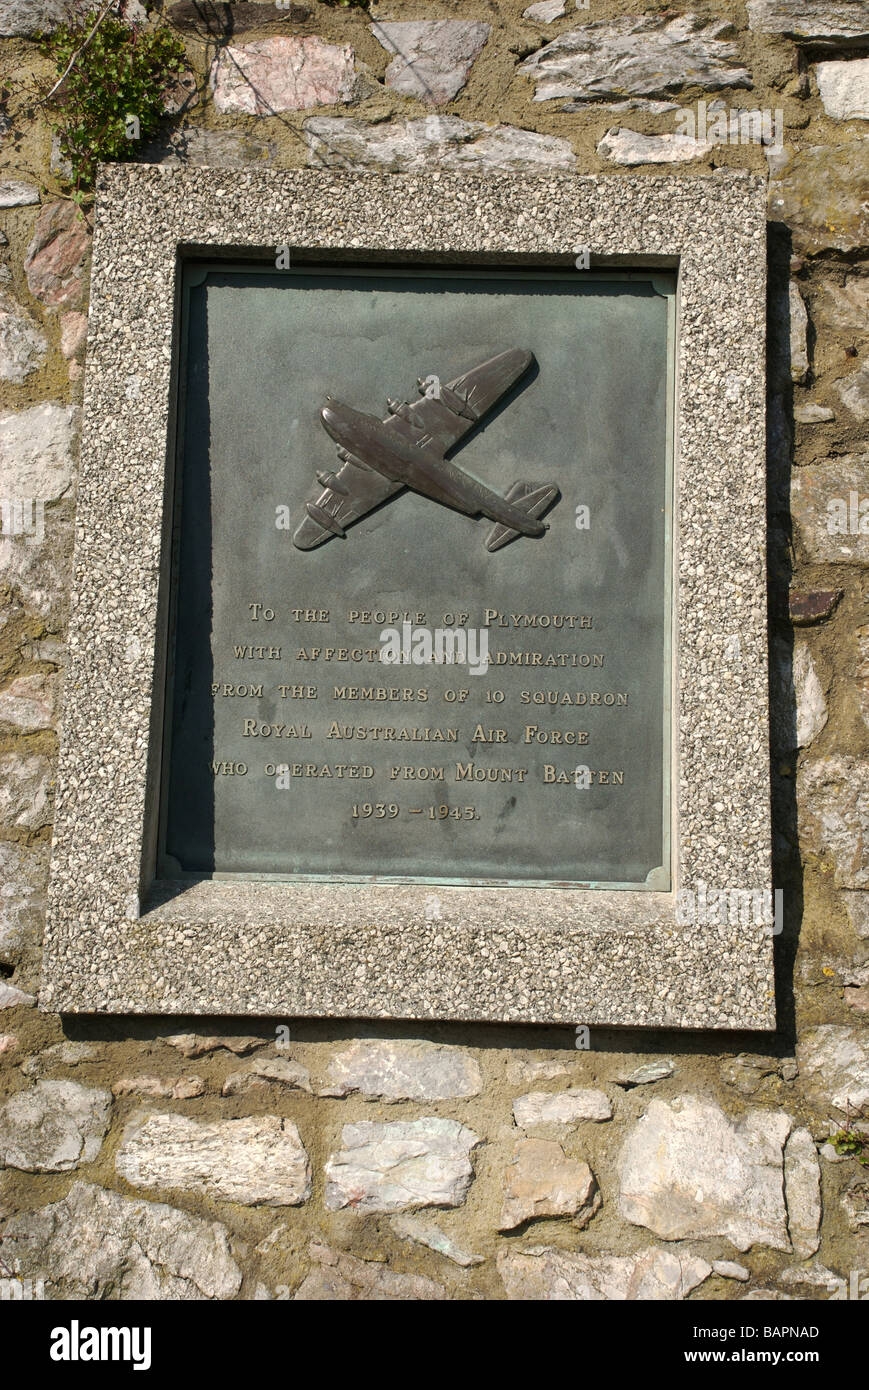 Plaque of gratitude to the people of Plymouth from the Royal Australian Air Force, Plymouth, Devon, UK - Stock Image